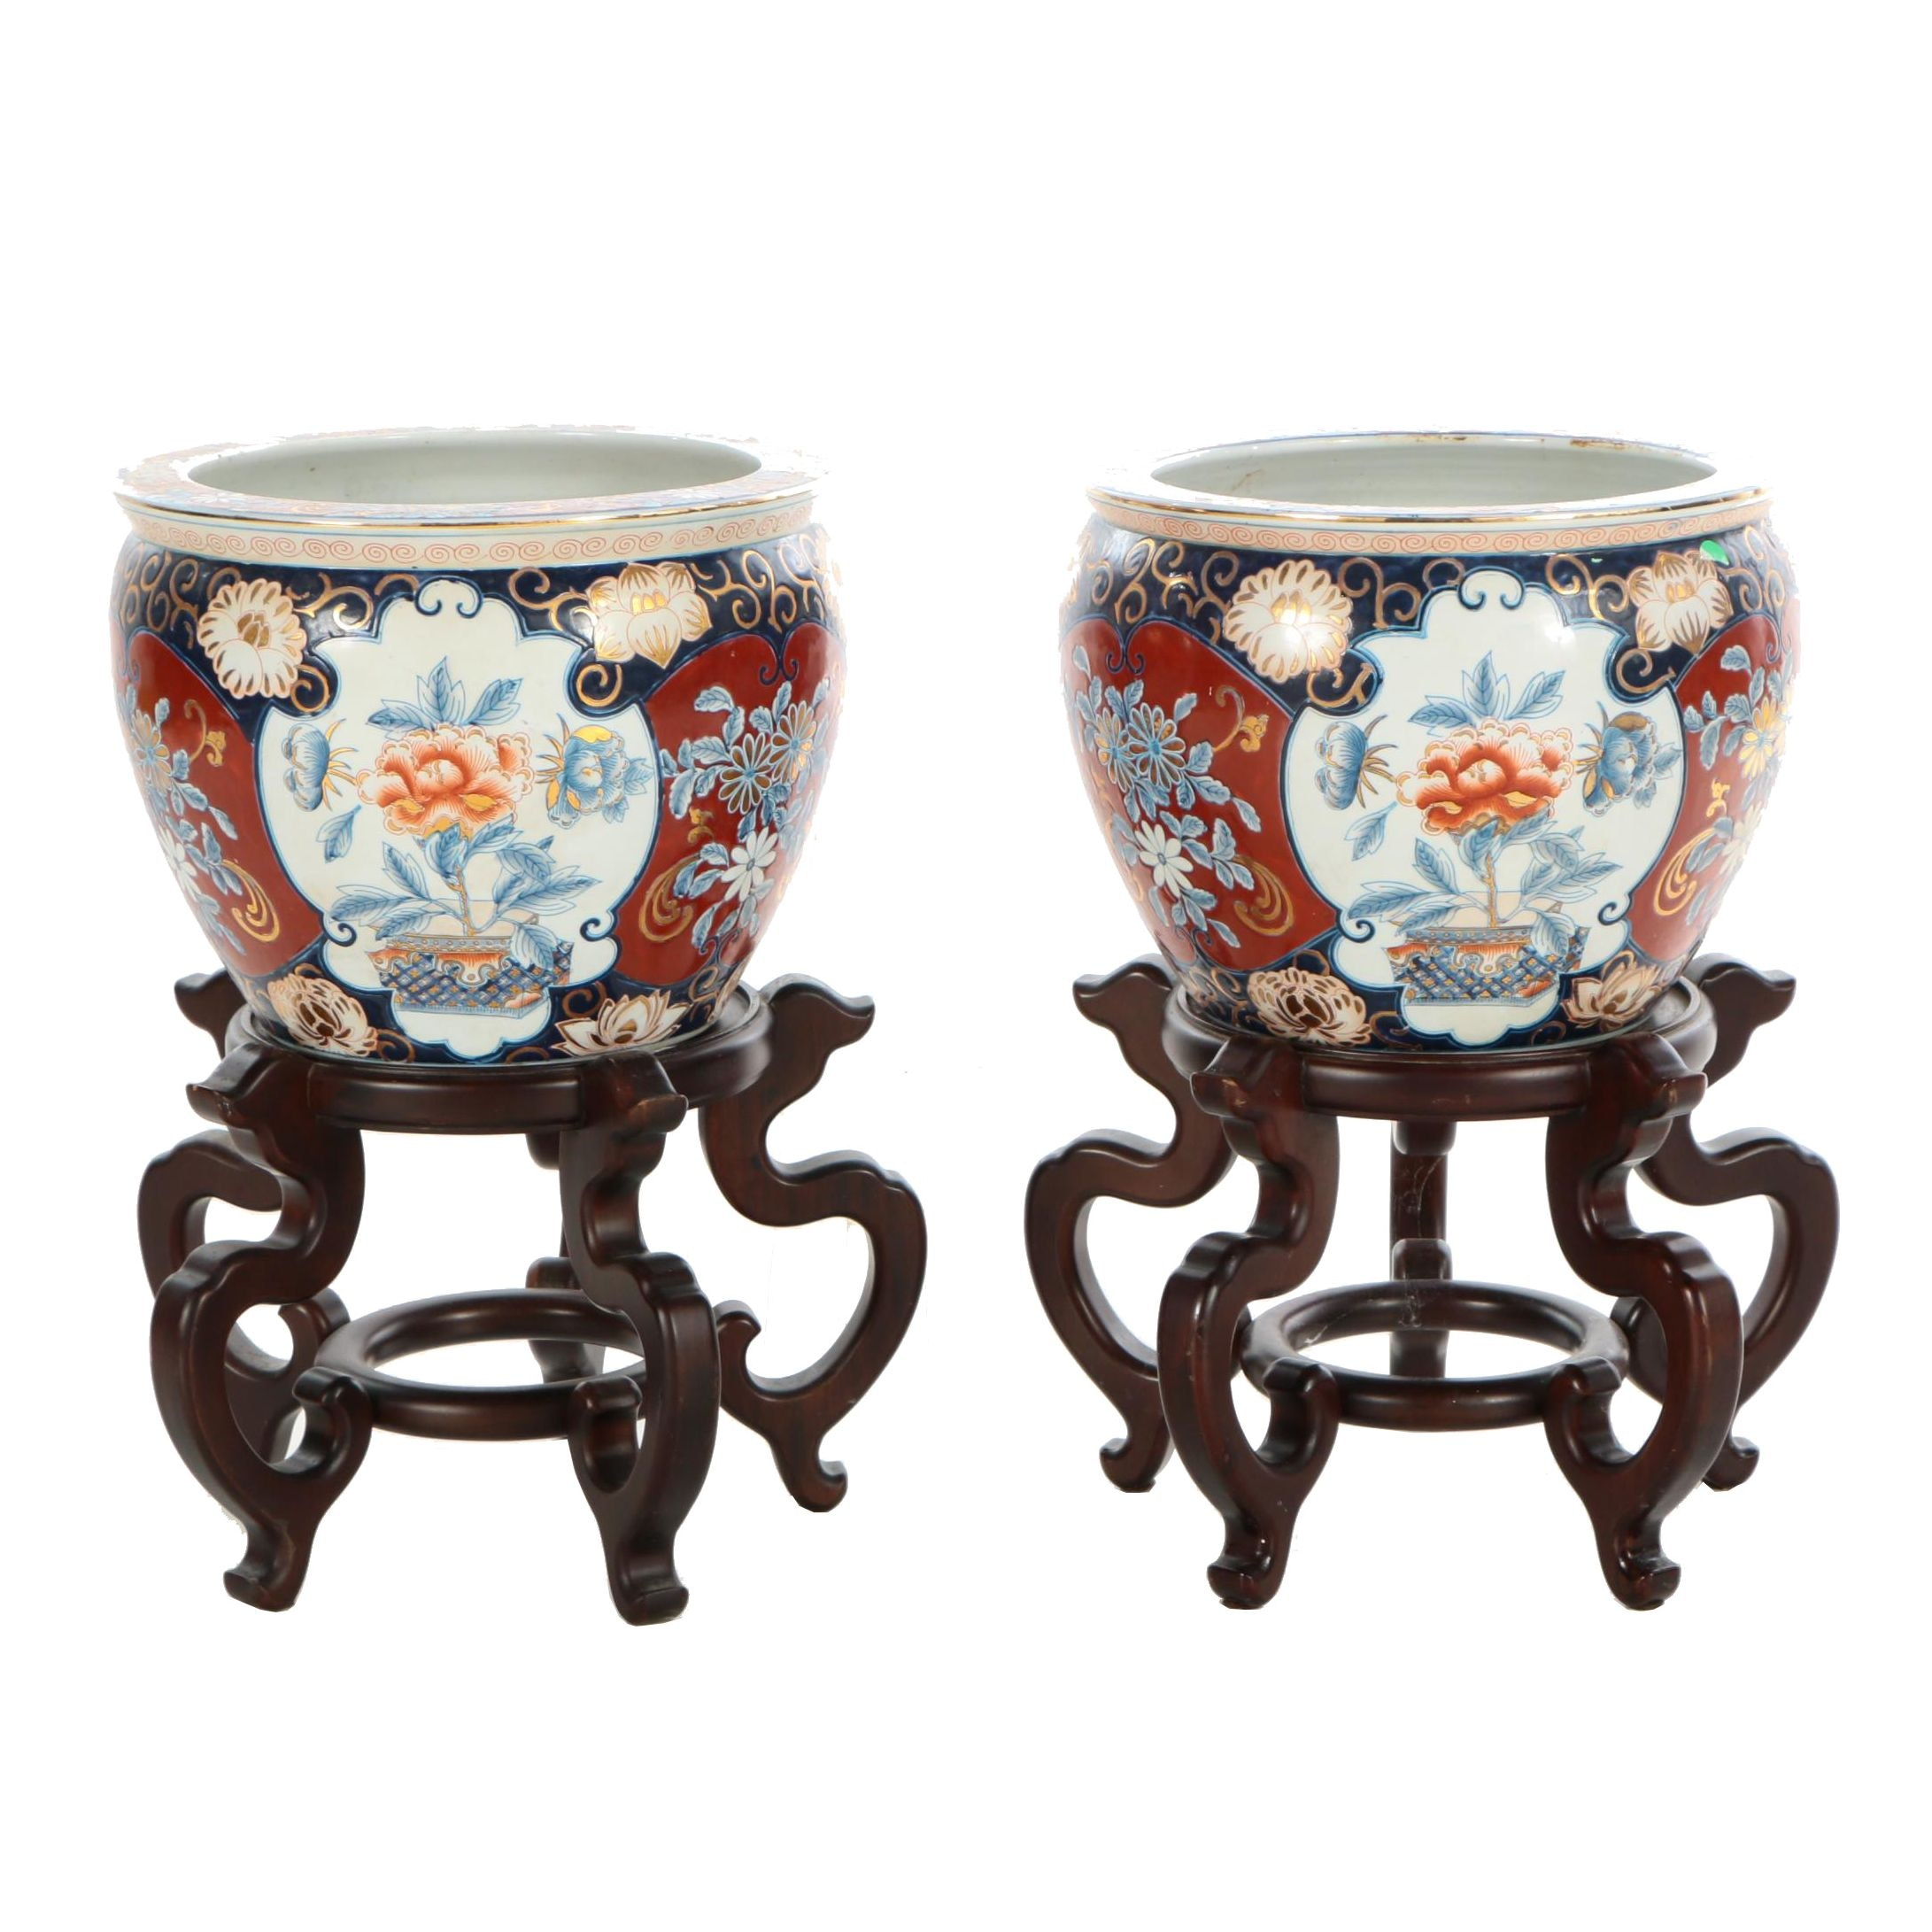 Chinese Hand-Painted Ceramic Fishbowl Jardinieres with Mahogany Stands